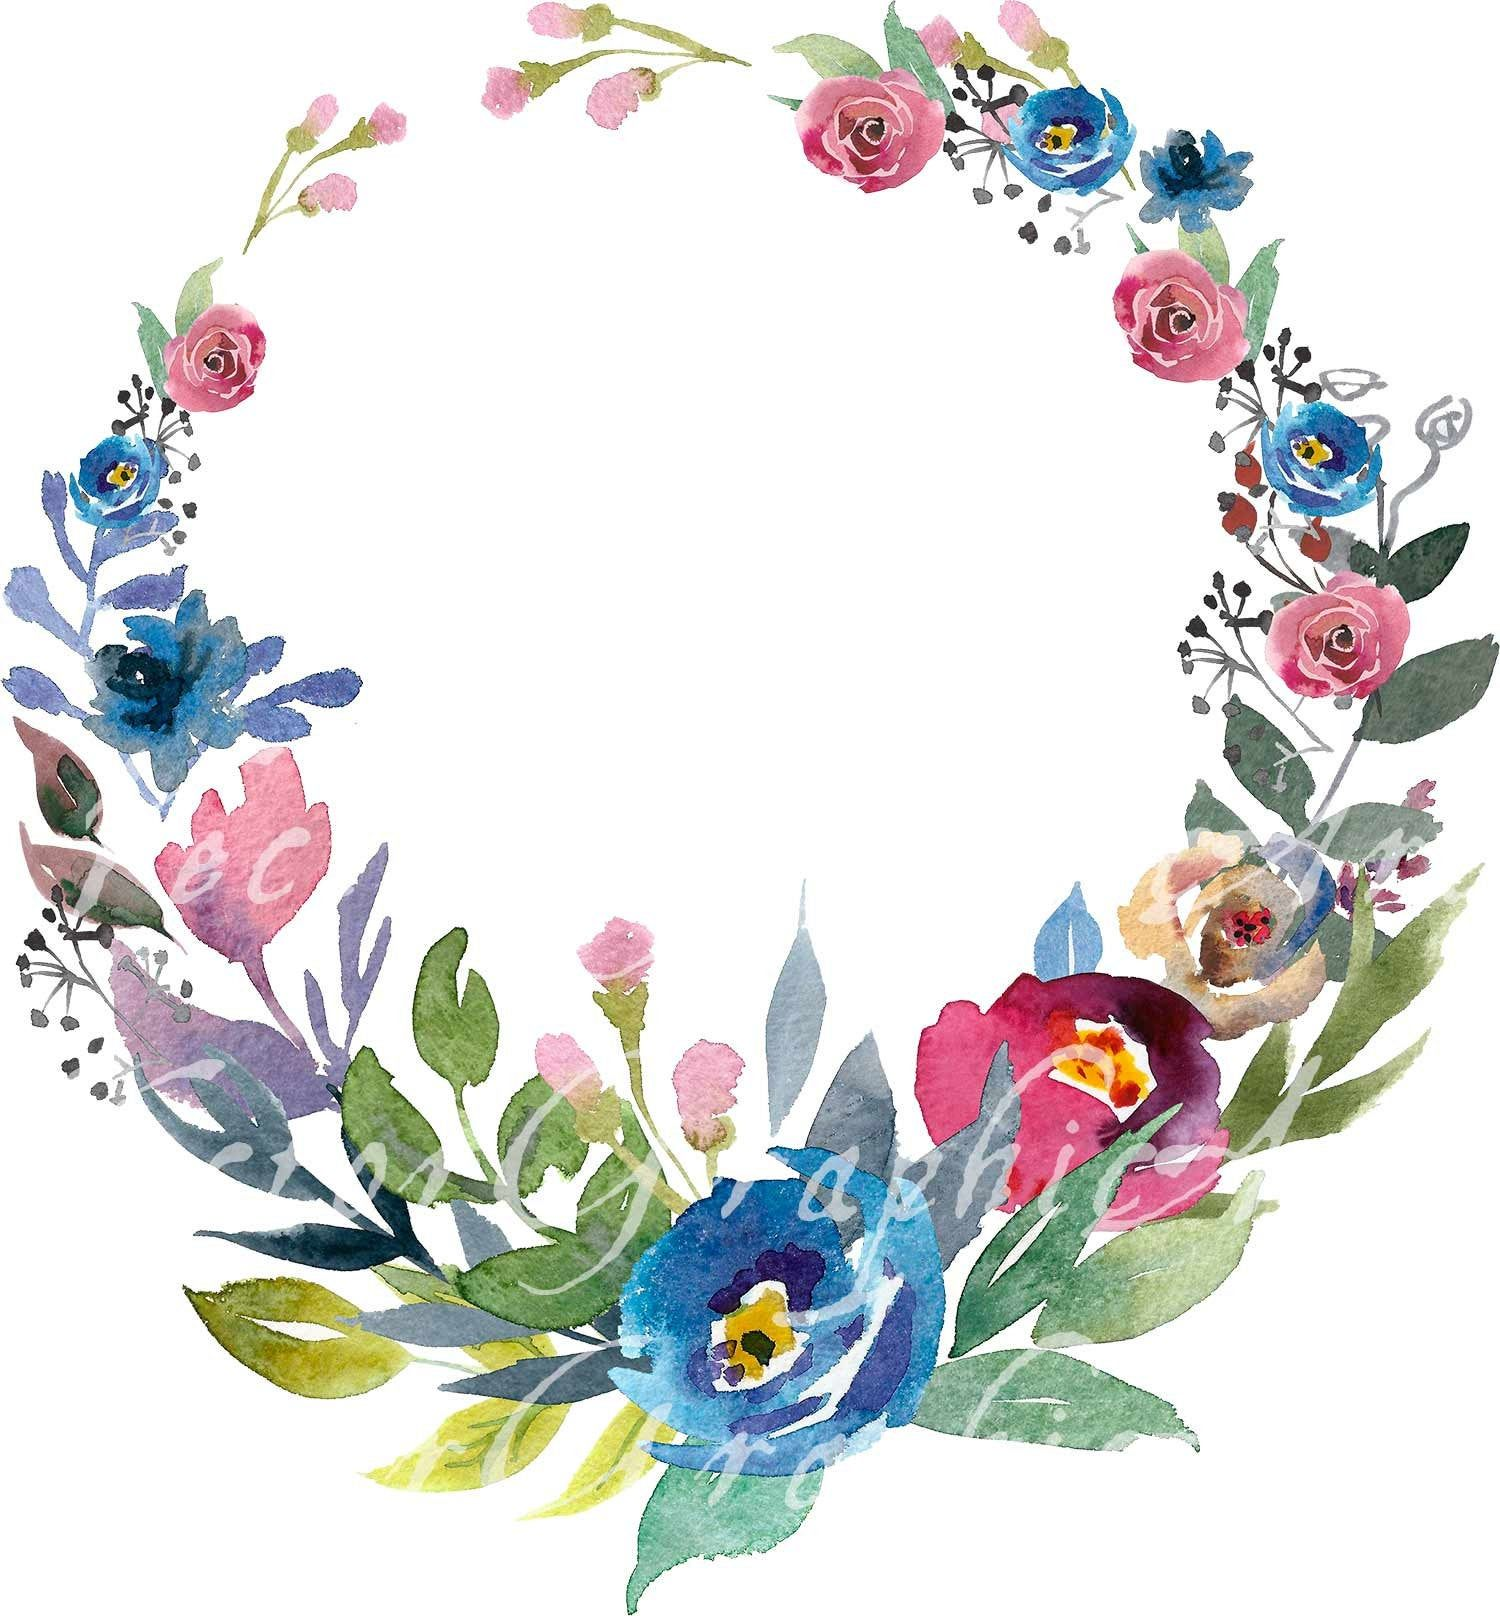 Floral Round Frame Watercolor Floral Clipart 1 Frame Etsy In 2021 Flower Wreath Illustration Flower Art Floral Watercolor